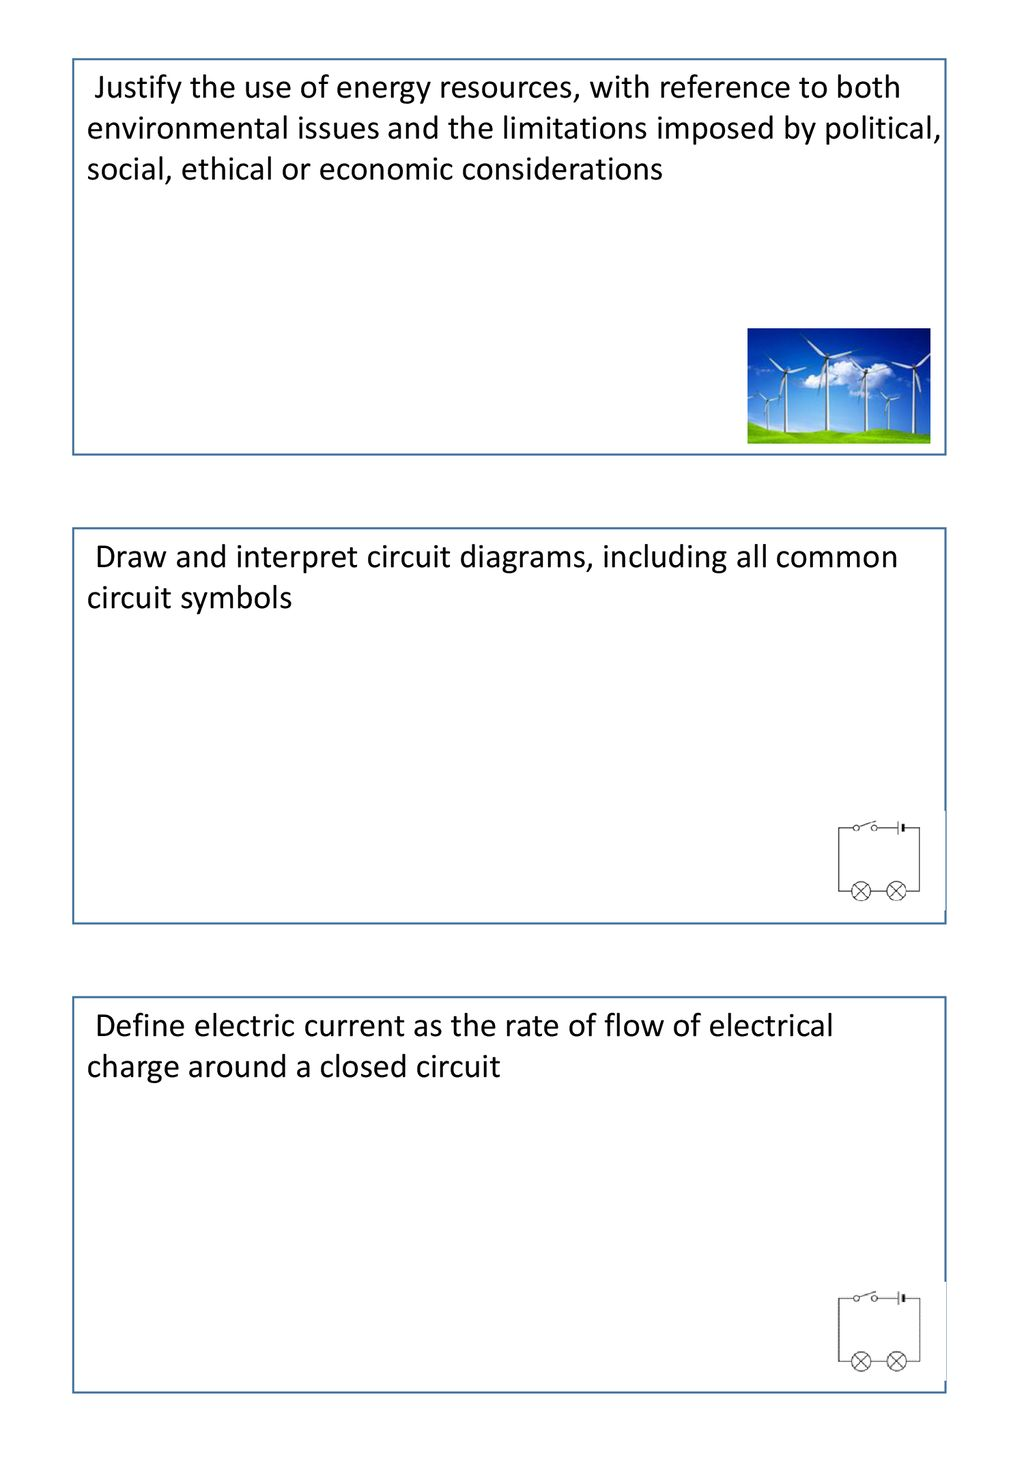 Define A System As An Object Or Group Of Objects And State Examples Drawing Circuits With Symbols 8 Justify